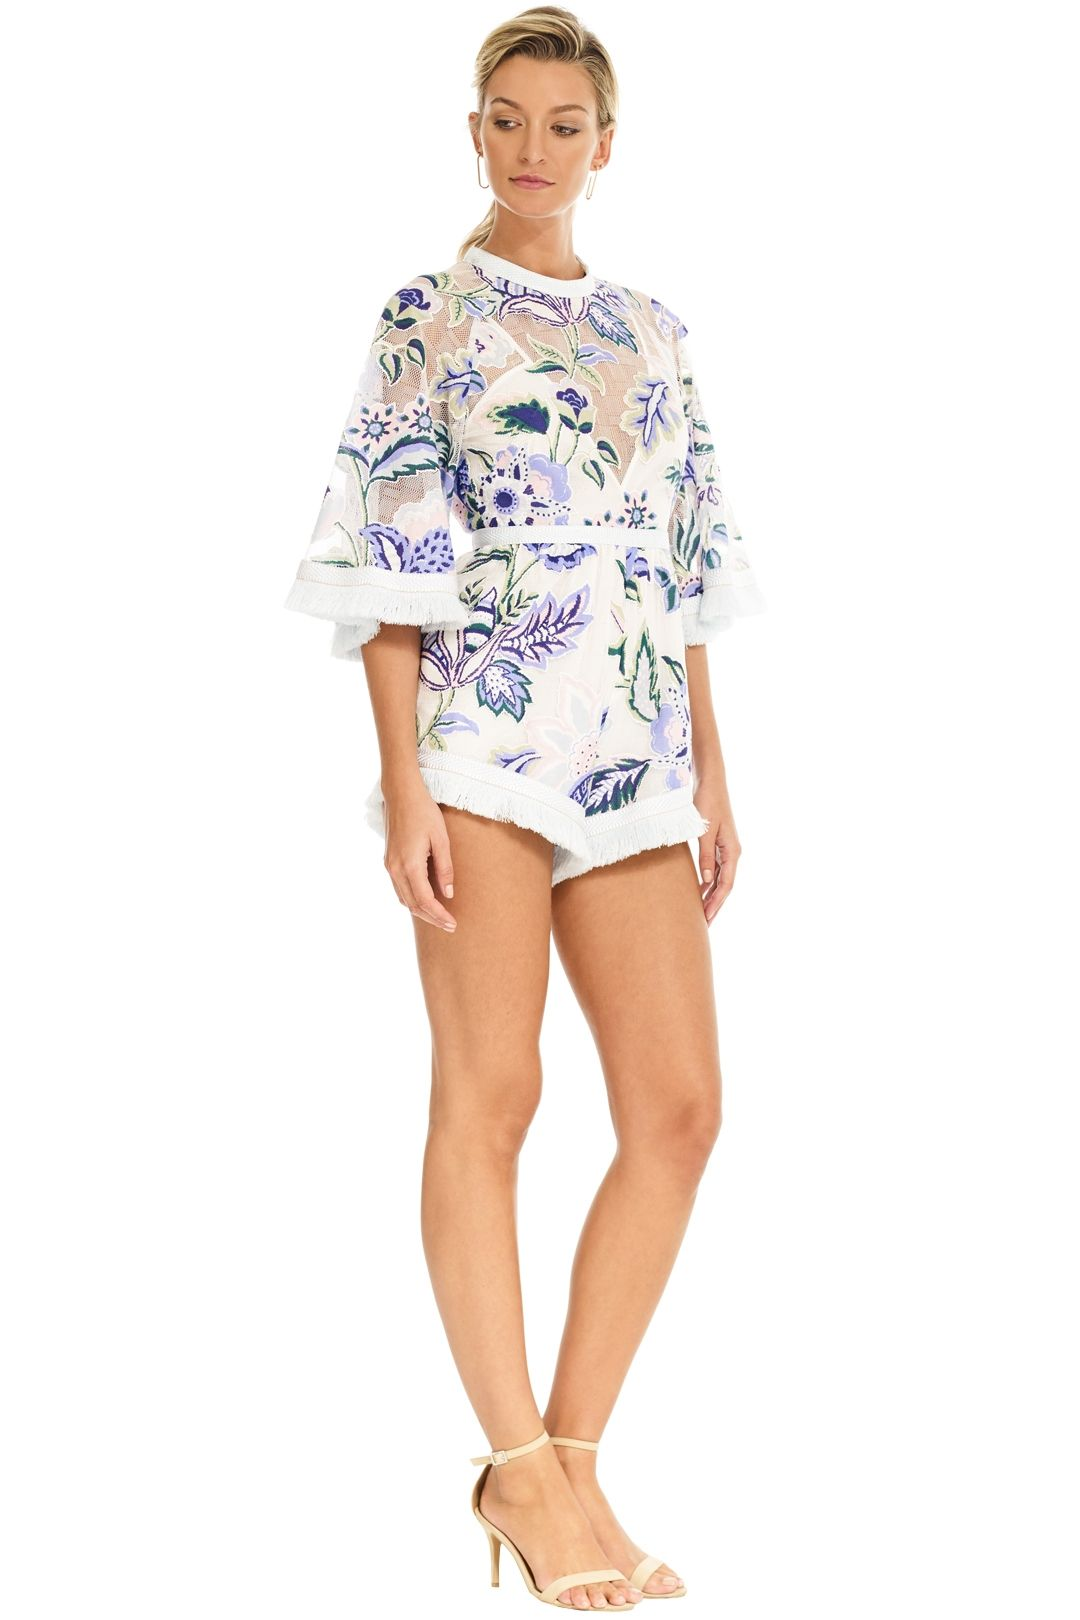 Alice McCall - Georgie Boy Playsuit - White Thistle - Side